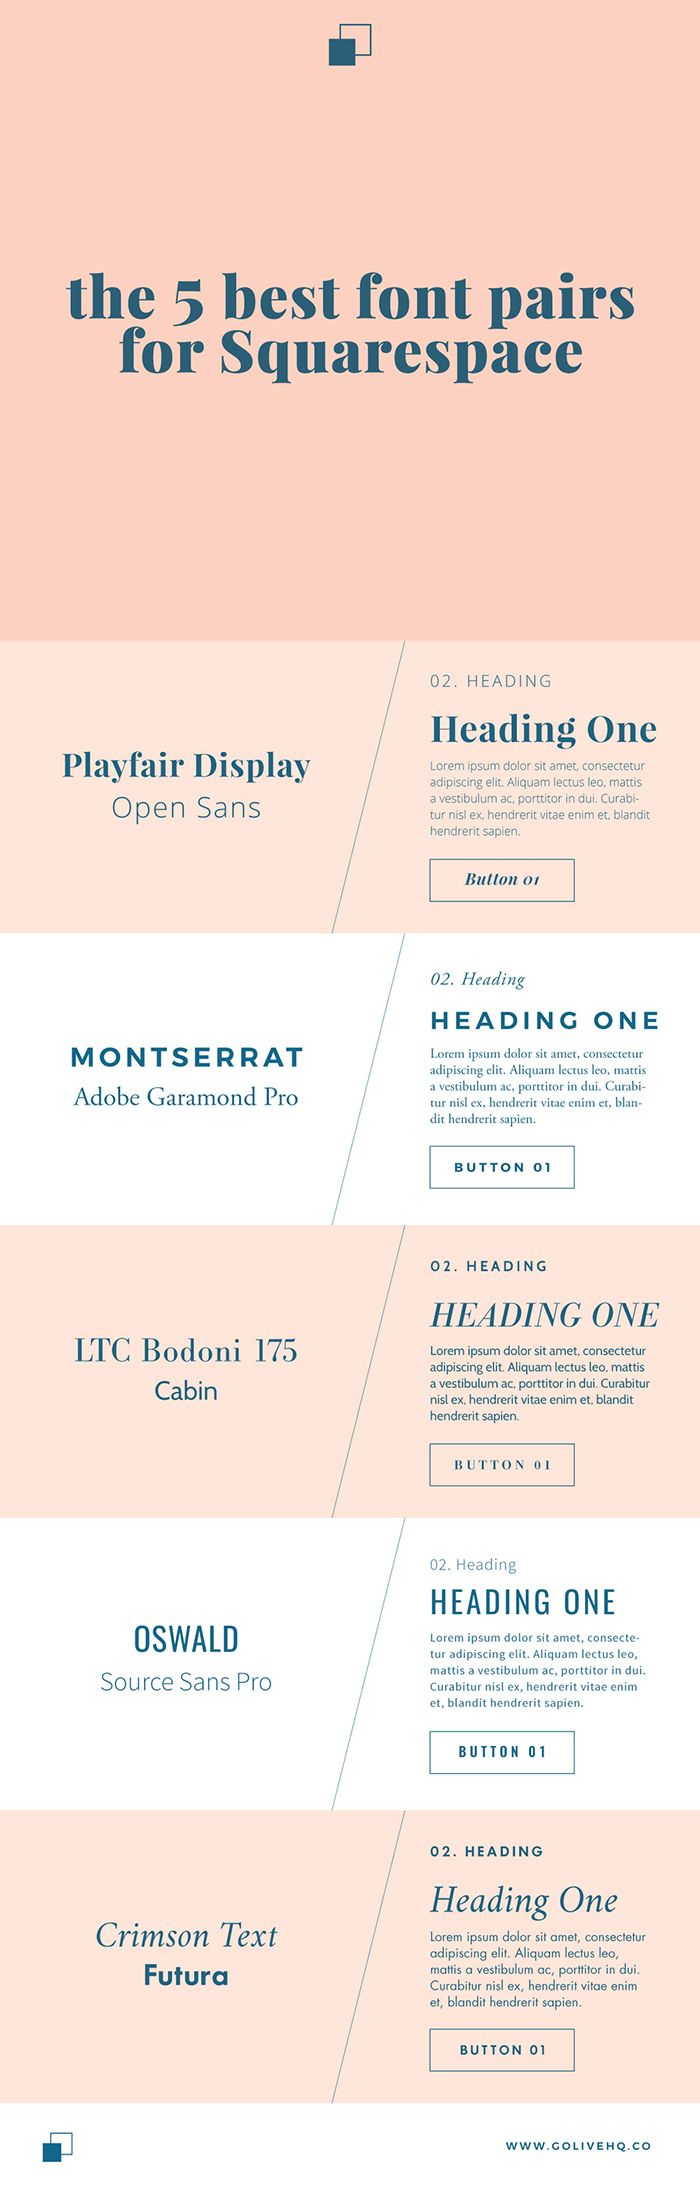 Monseratt and garamond 5 BEST FONT PAIRS FOR SQUARESPACe